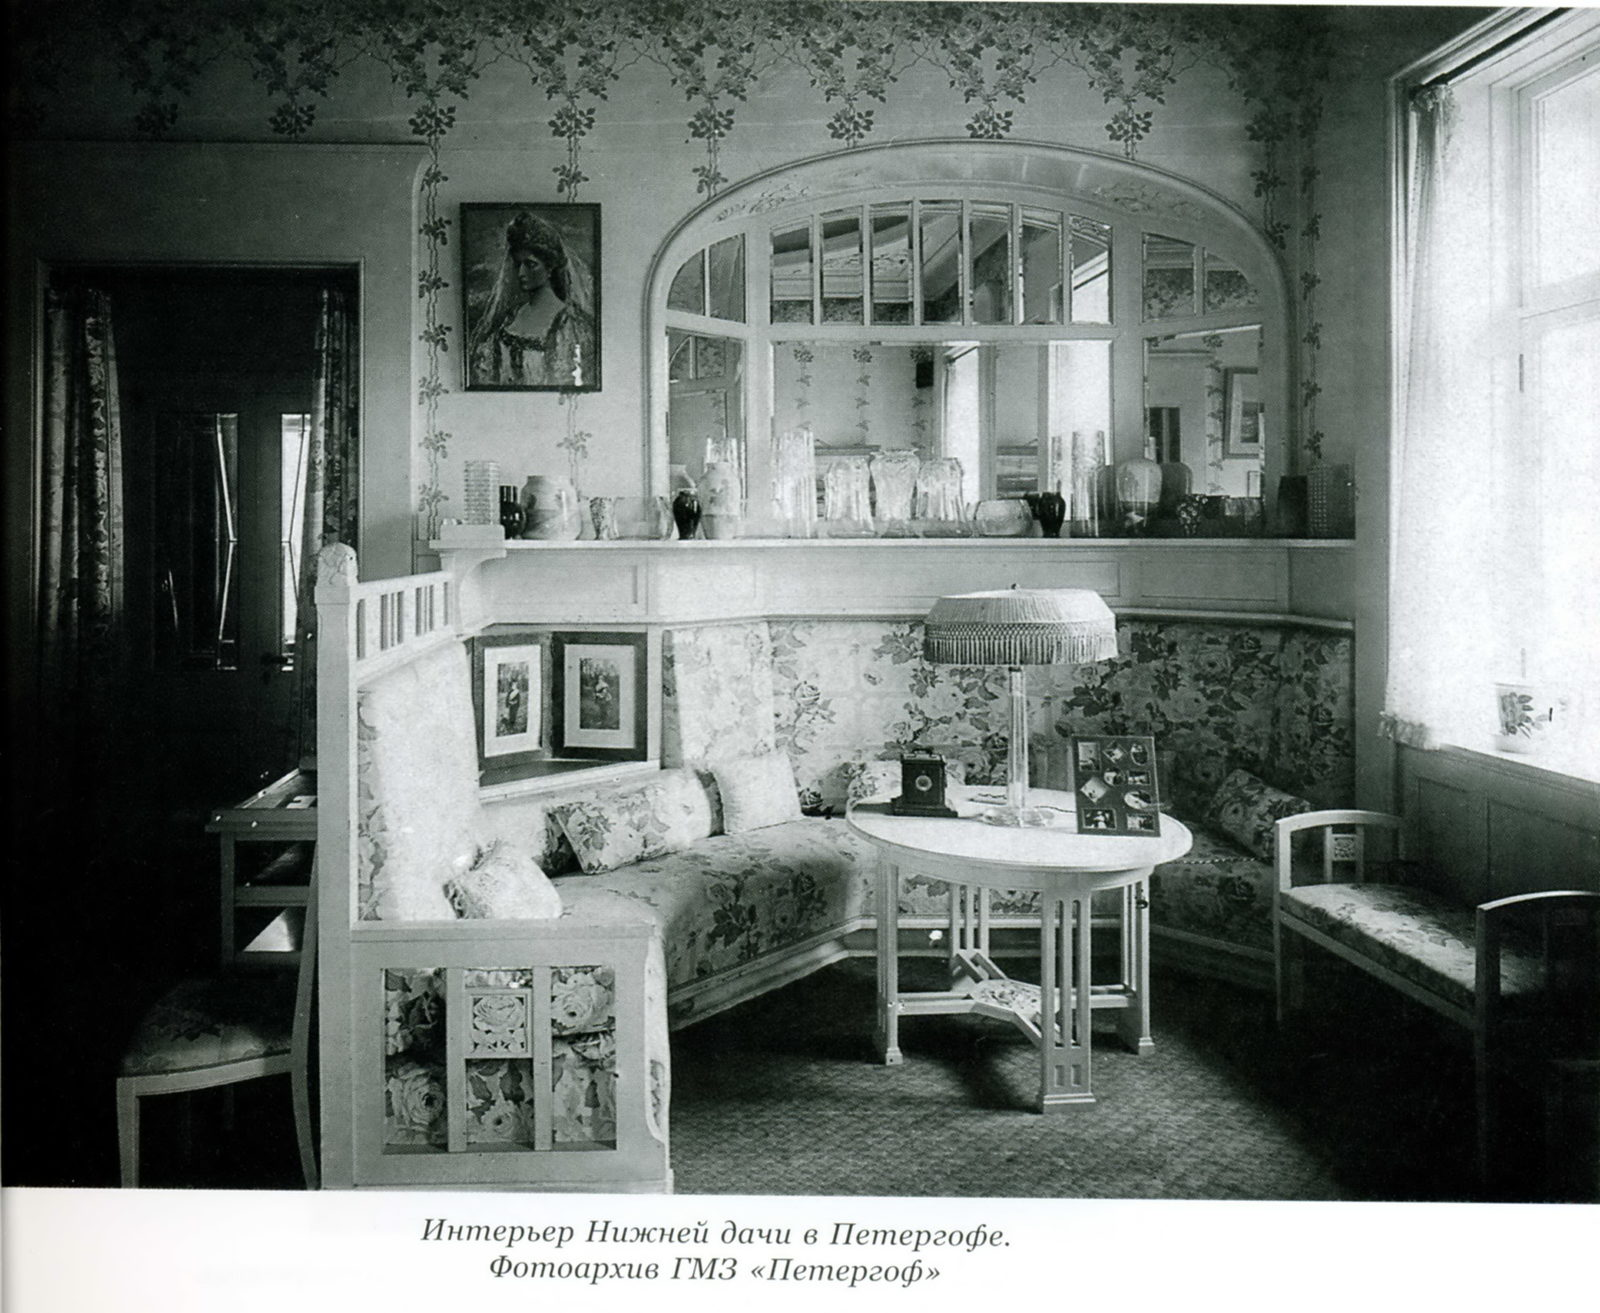 Palaces of Peterhof. Lower dacha. Interior.